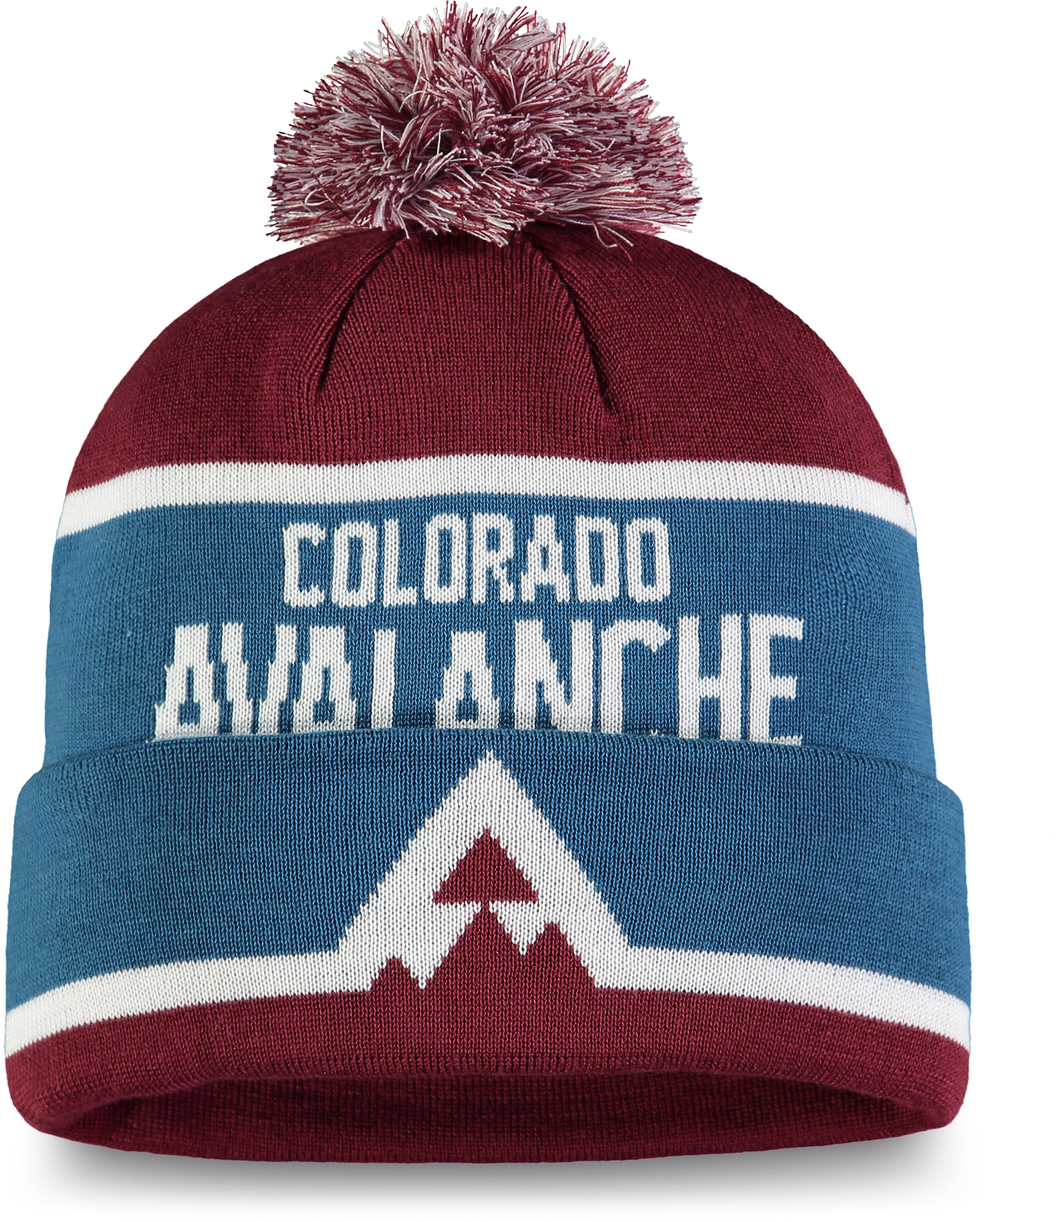 2020 Avalanche Stadium Series Pom Knit